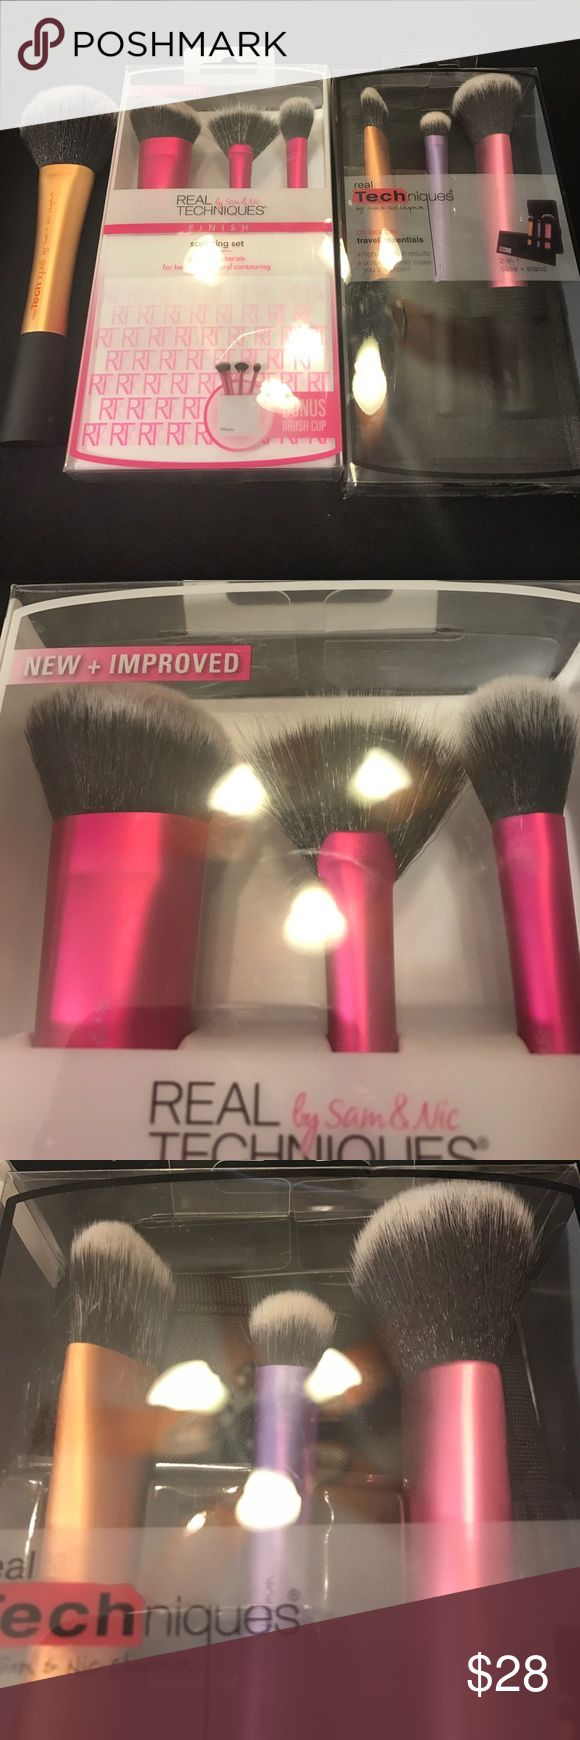 Real Techniques Brushes: New Sculpting Set/Travel Real Techniques Brushes: New Sculpting Set/Travel essentials. I added a new powder brush because the sets were missing it. Sculpting brush, fan brush, setting brush, brush cup, foundation or concealer brush, blush and Bronzer brush, and a shadow brush with a travel case included. All New Sephora Makeup Brushes & Tools